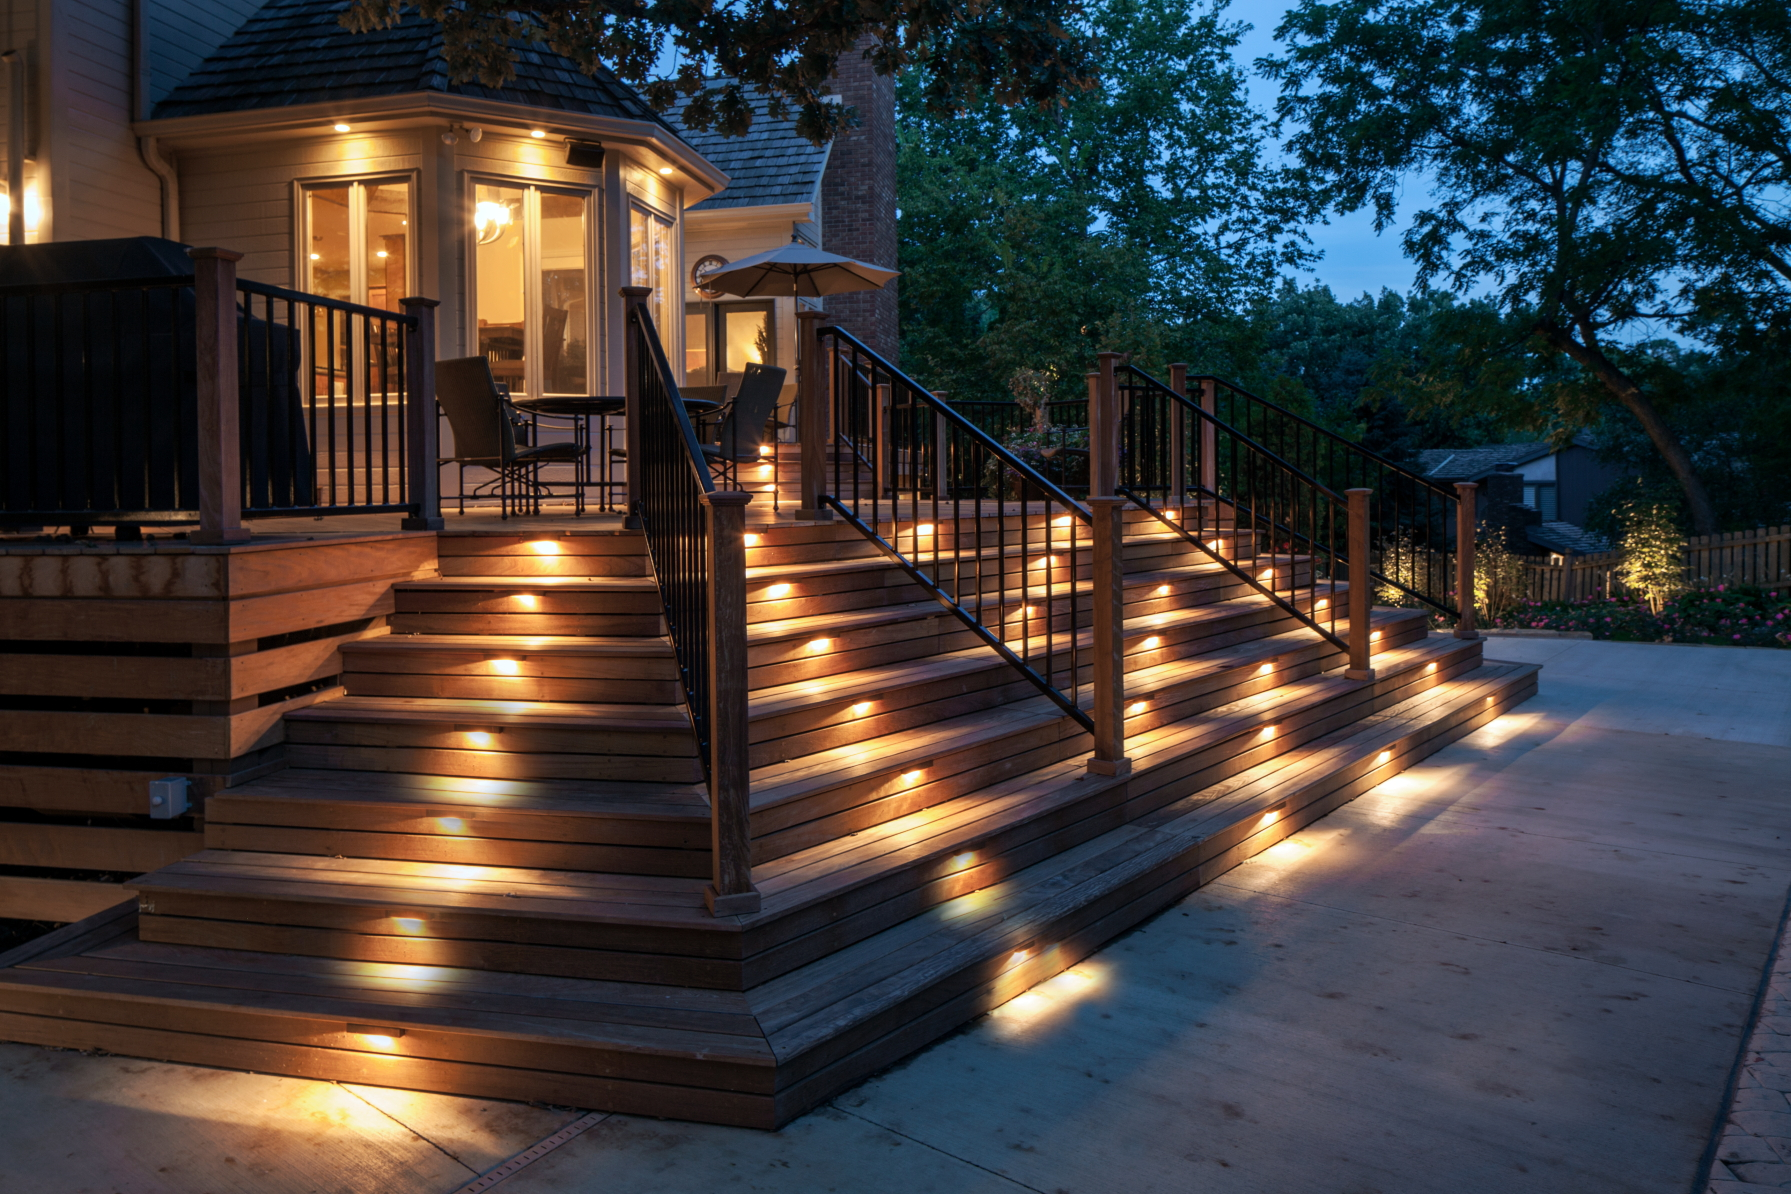 Landscape outdoor lighting - 10 ways to bring out the beauty of ...